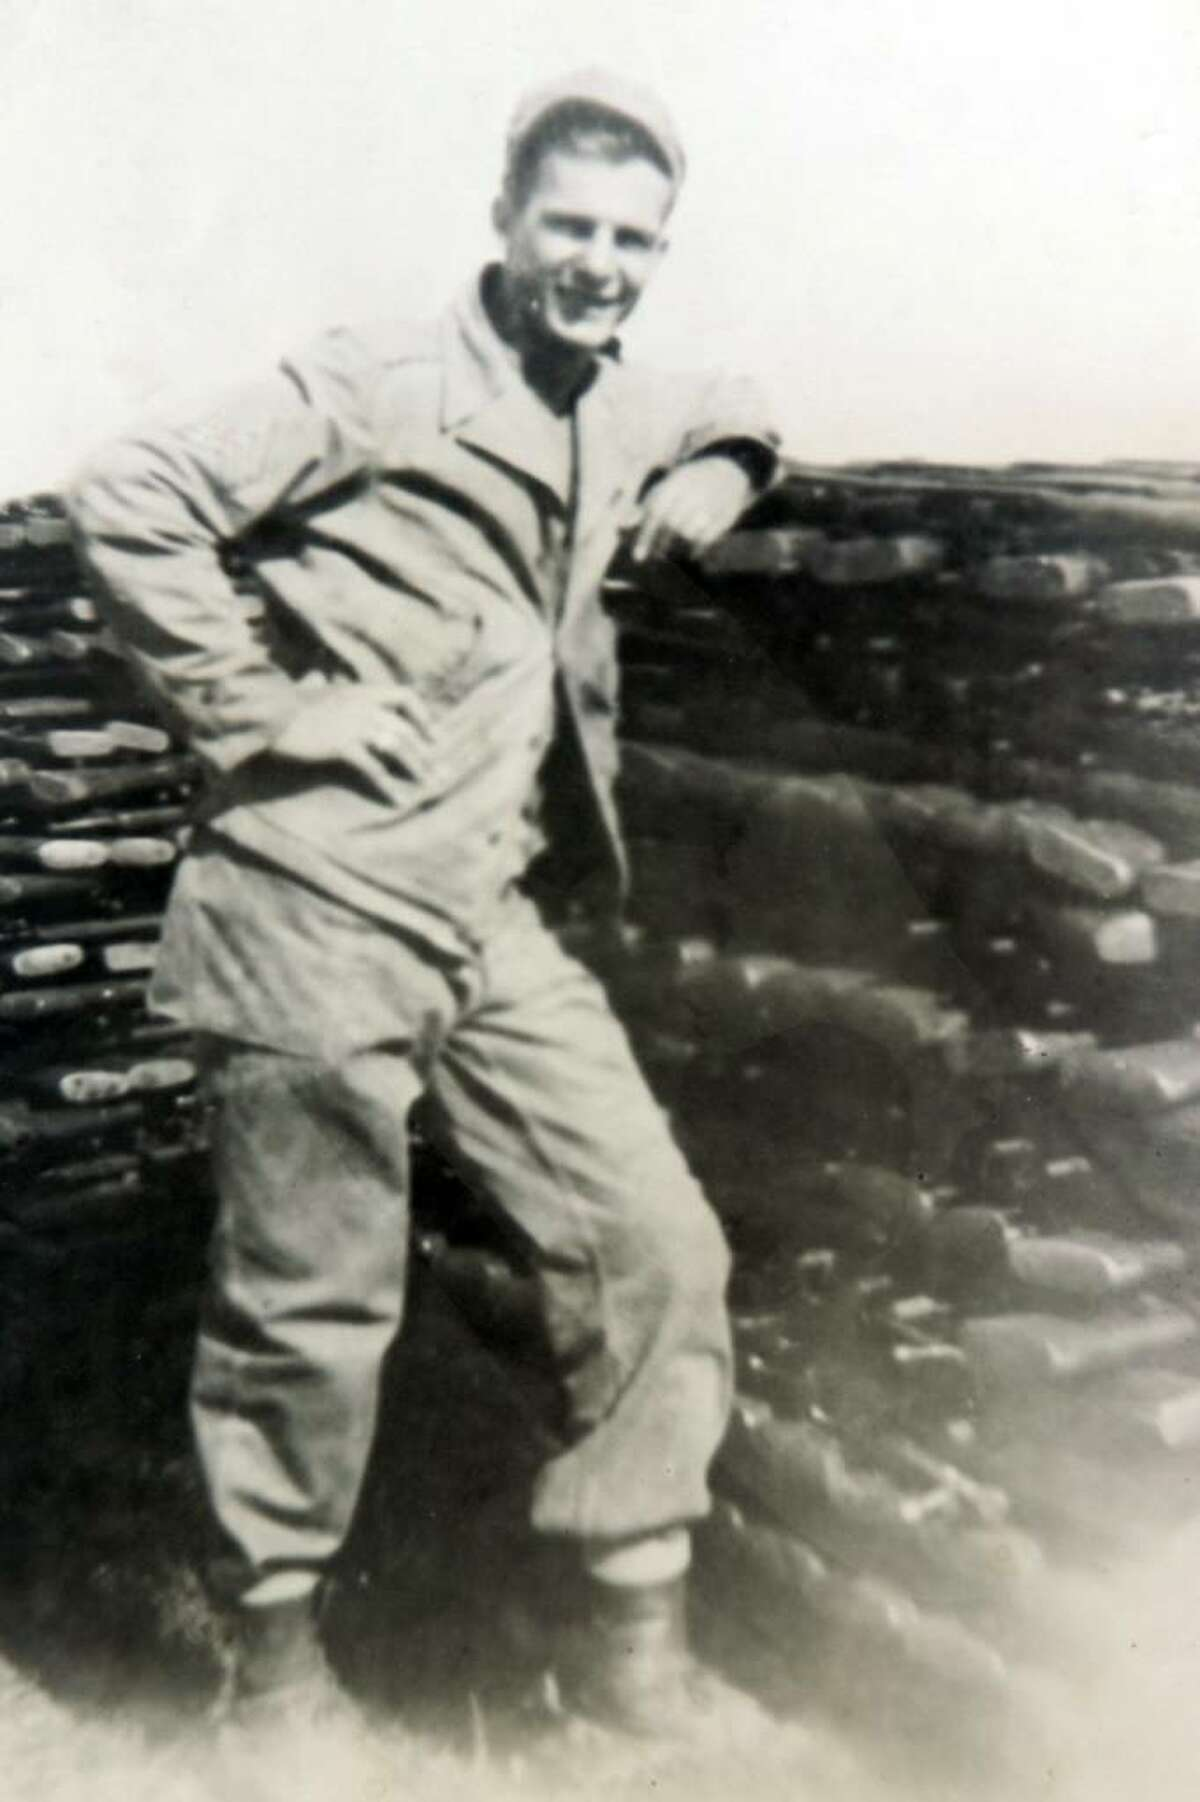 Walter Stachacz poses as a Sargeant in the U.S. Army while serving in Japan in October 1945, shortly after the end of WWII.